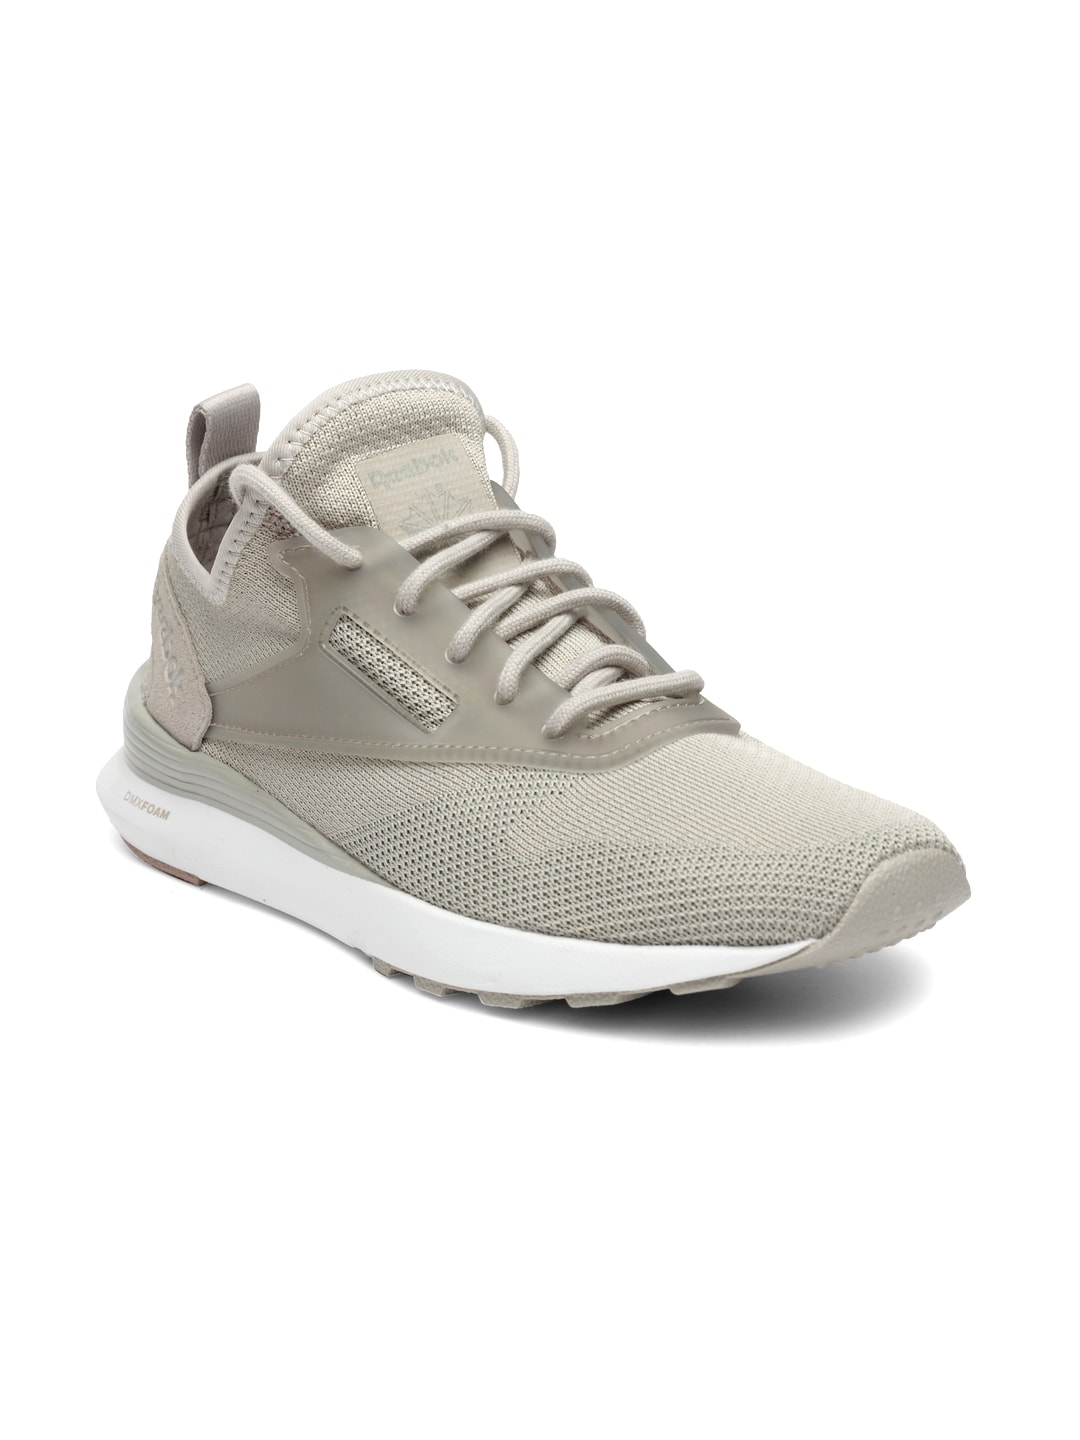 84a235d01a3c2 Reebok Casual Shoes - Buy Reebok Casual Shoes Online in India